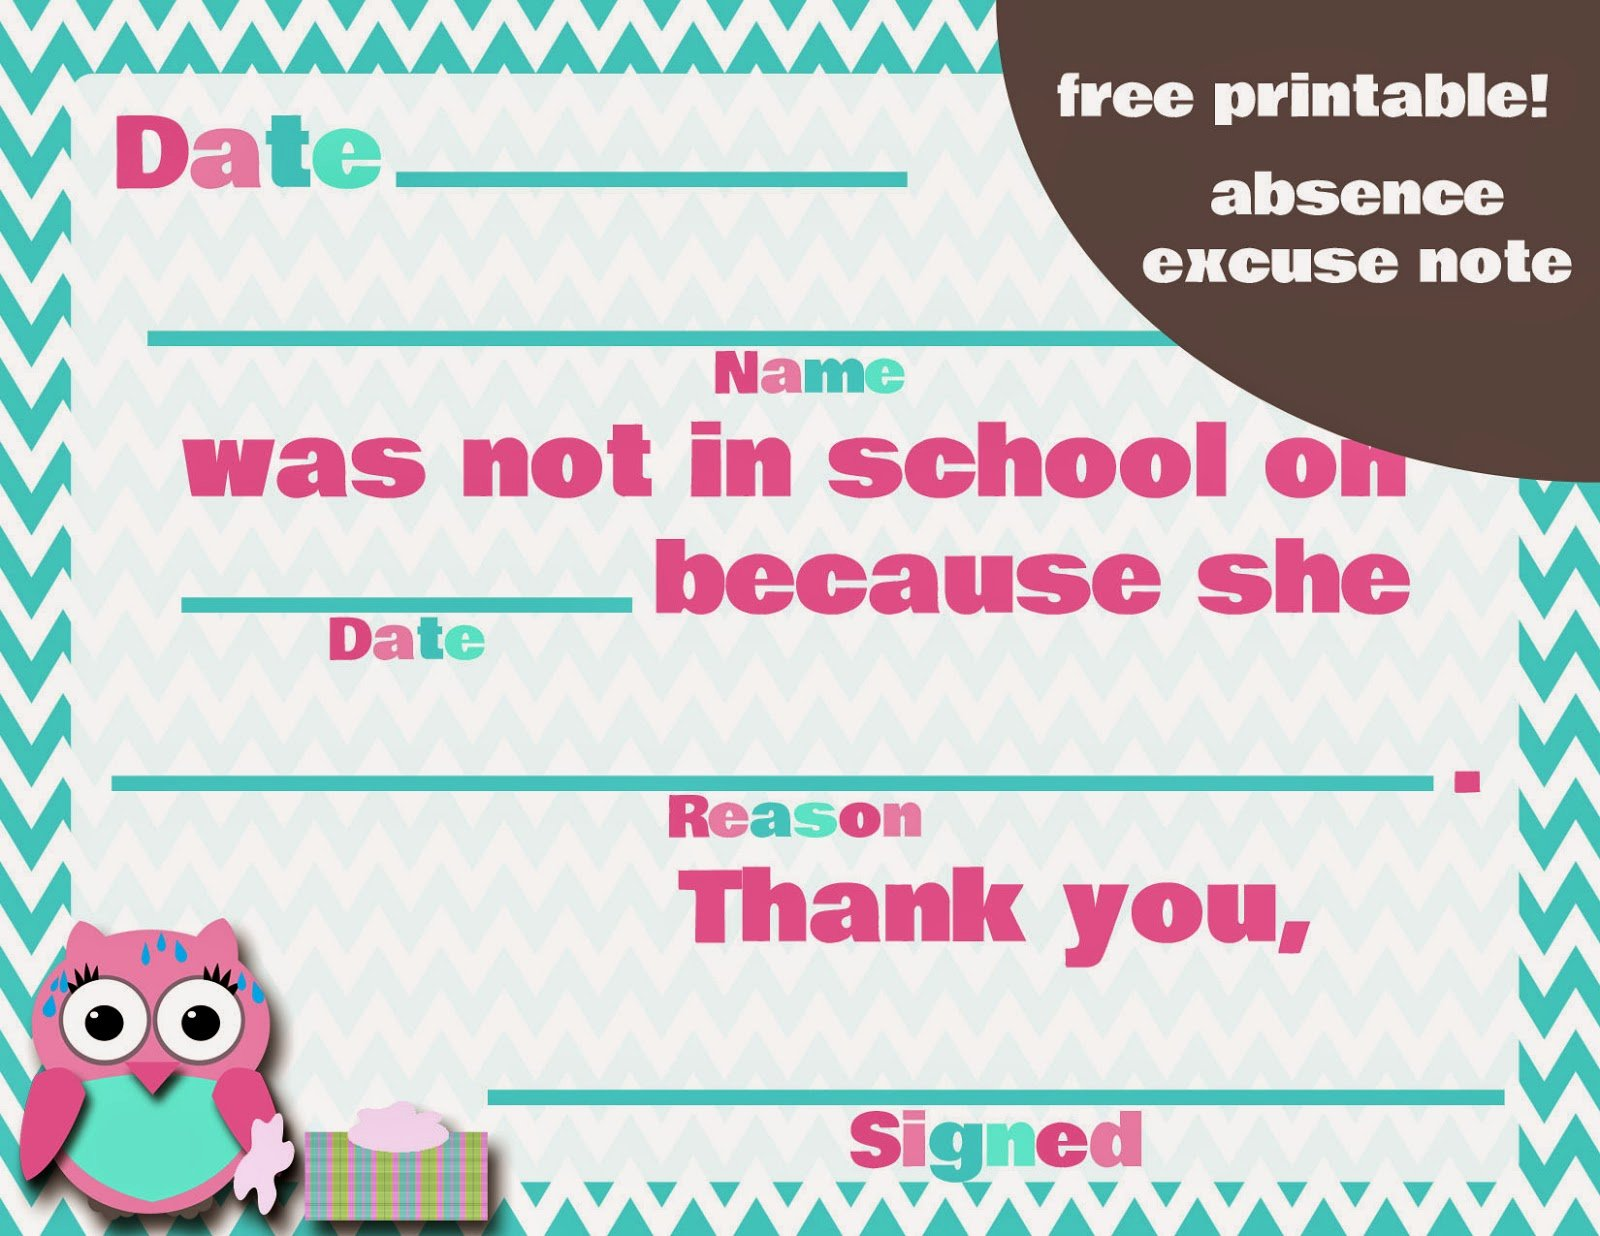 Excuse Note for School Absence Inspirational My Fashionable Designs Free Printable Absence Excuse